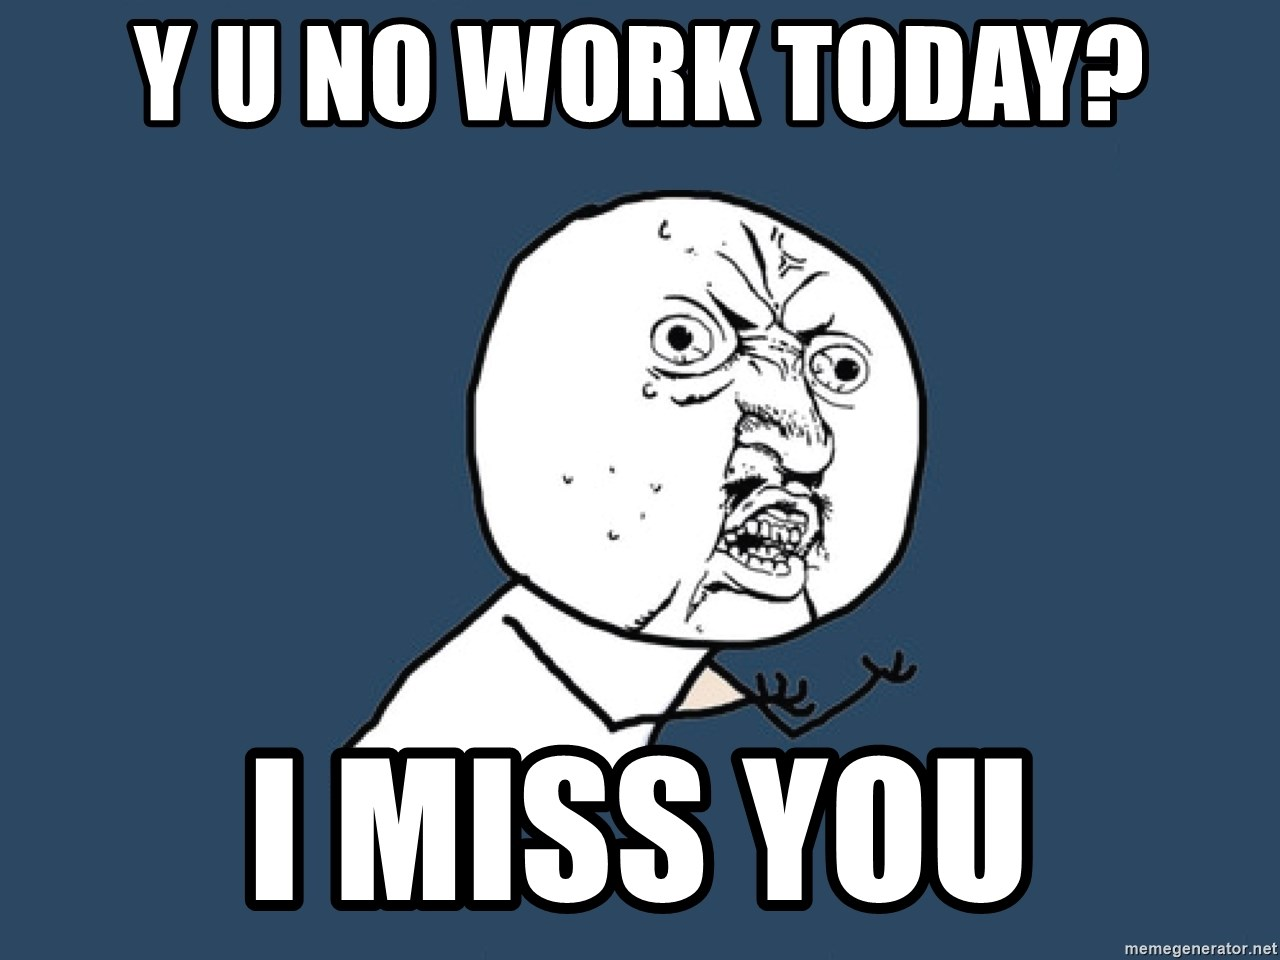 miss you at work